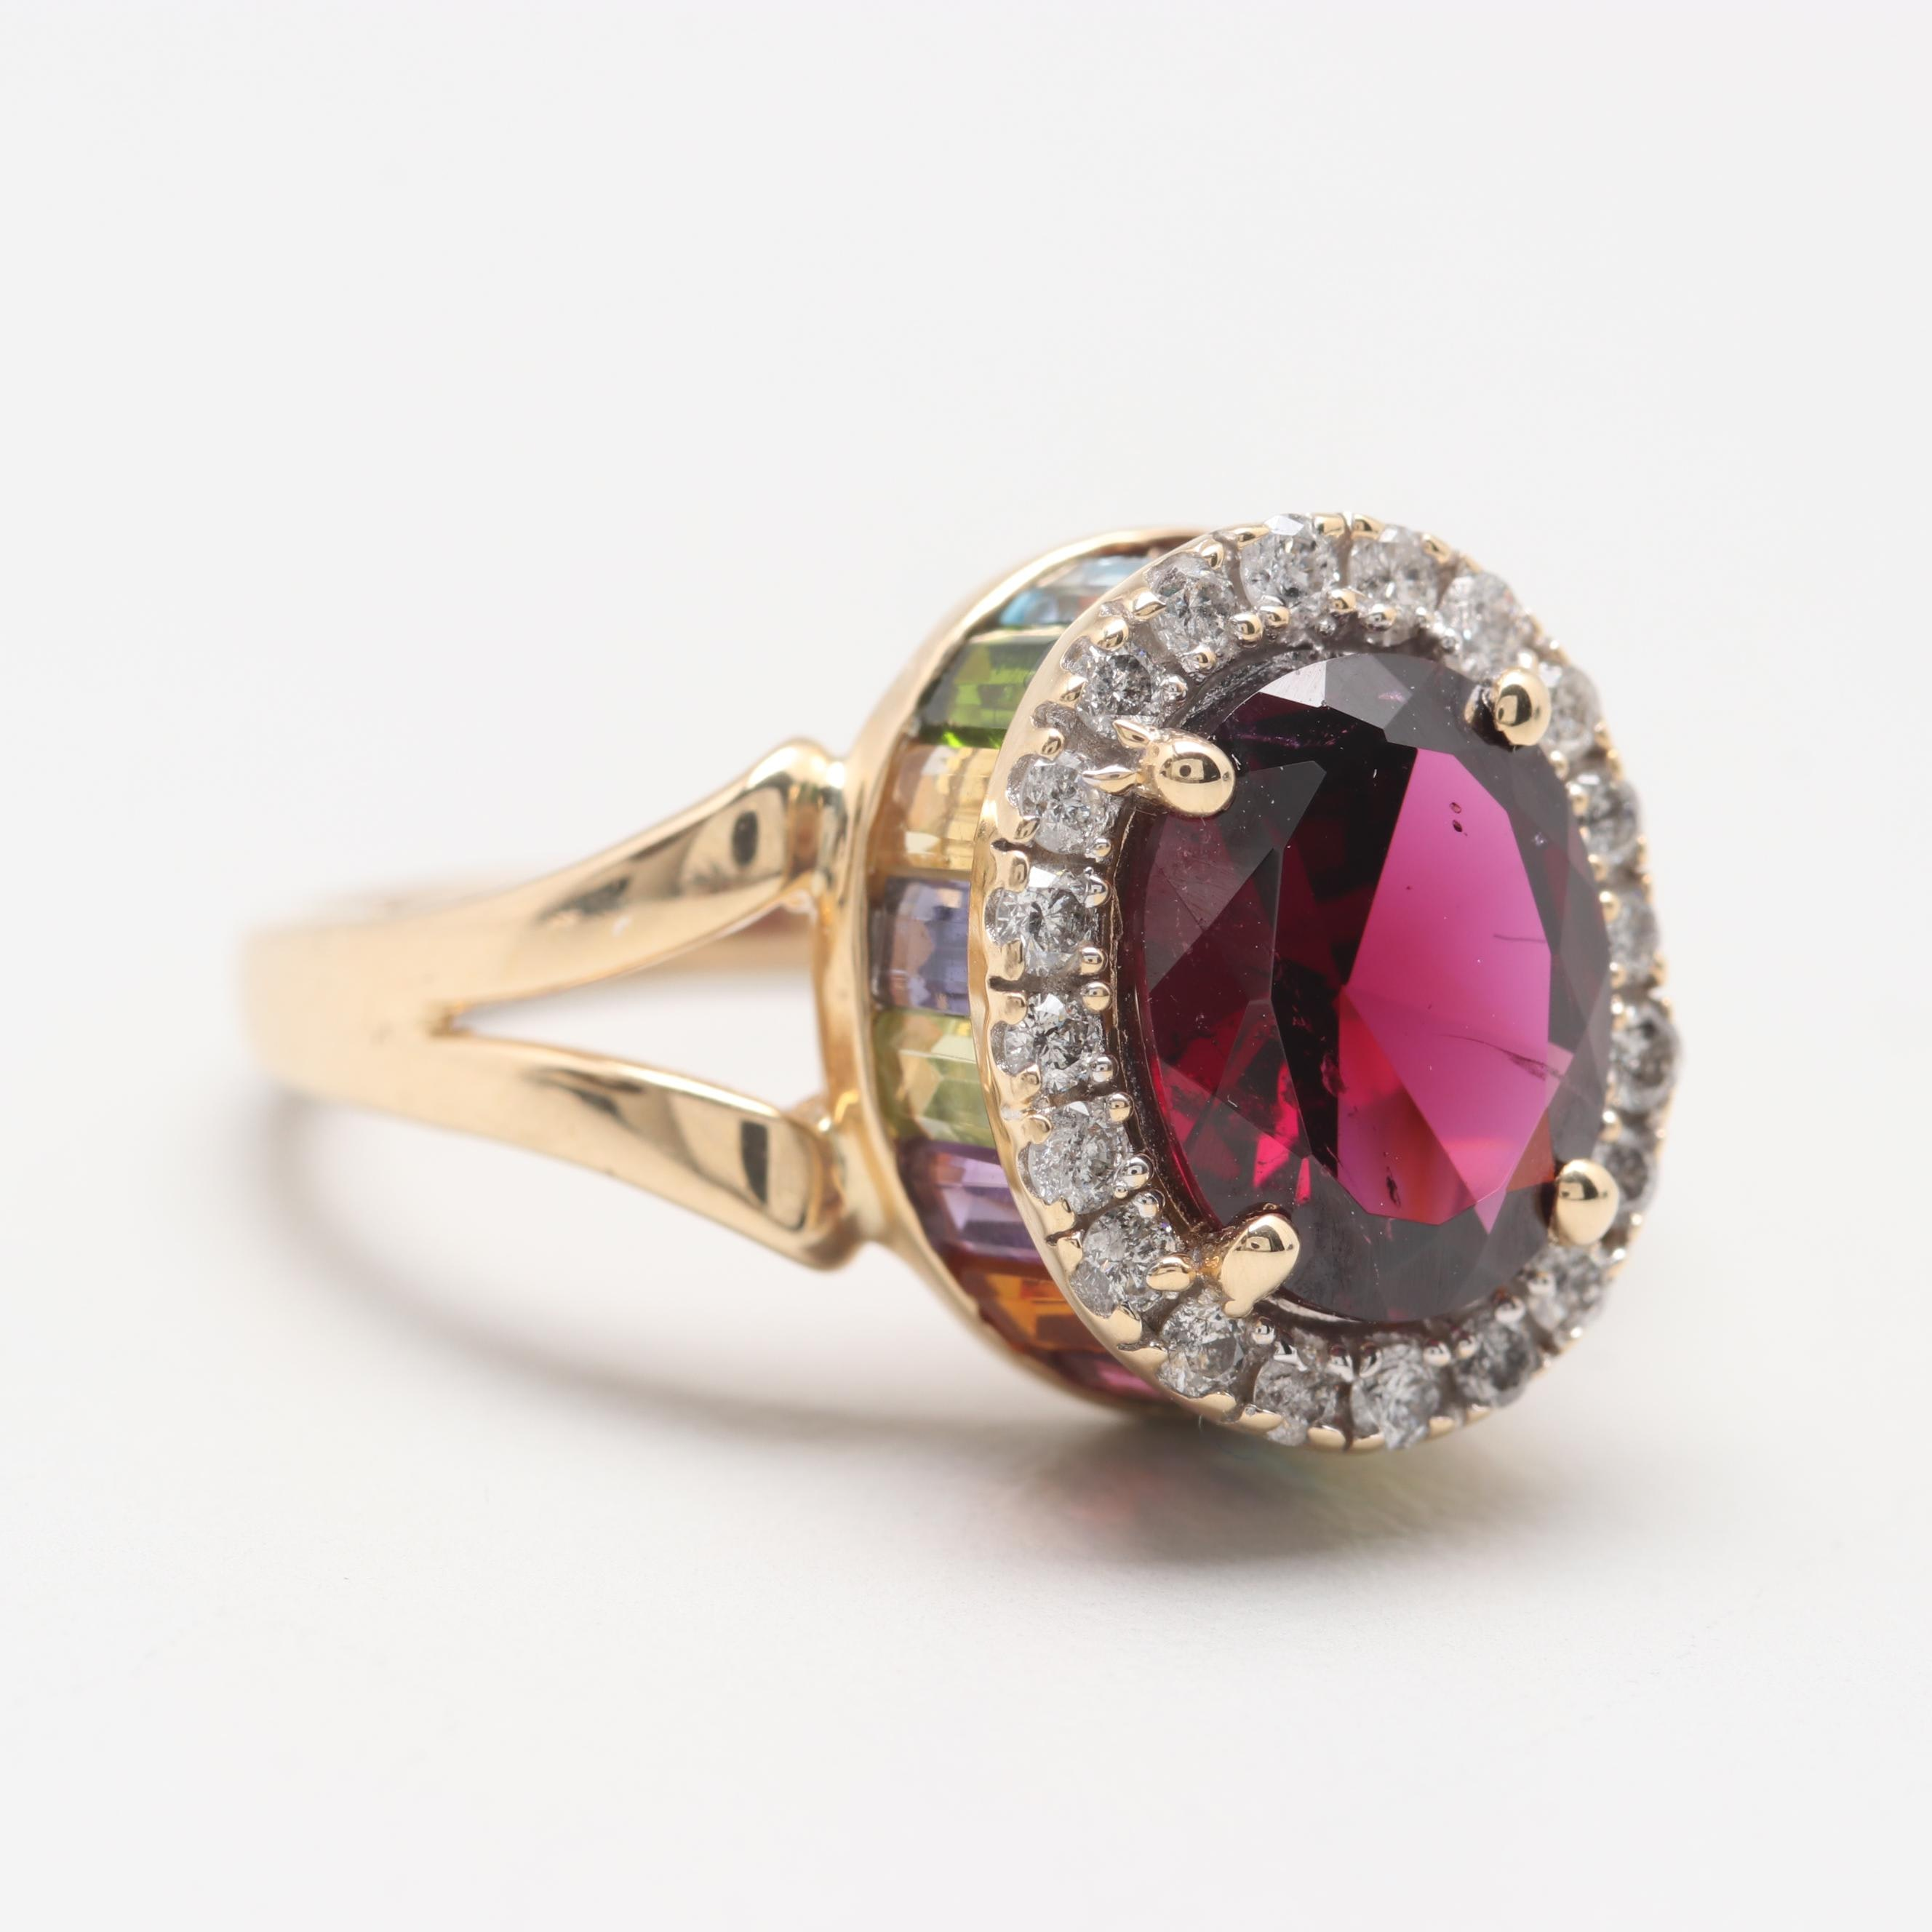 14K Yellow Gold Rhodolite Garnet, Diamond, and Gemstone Ring